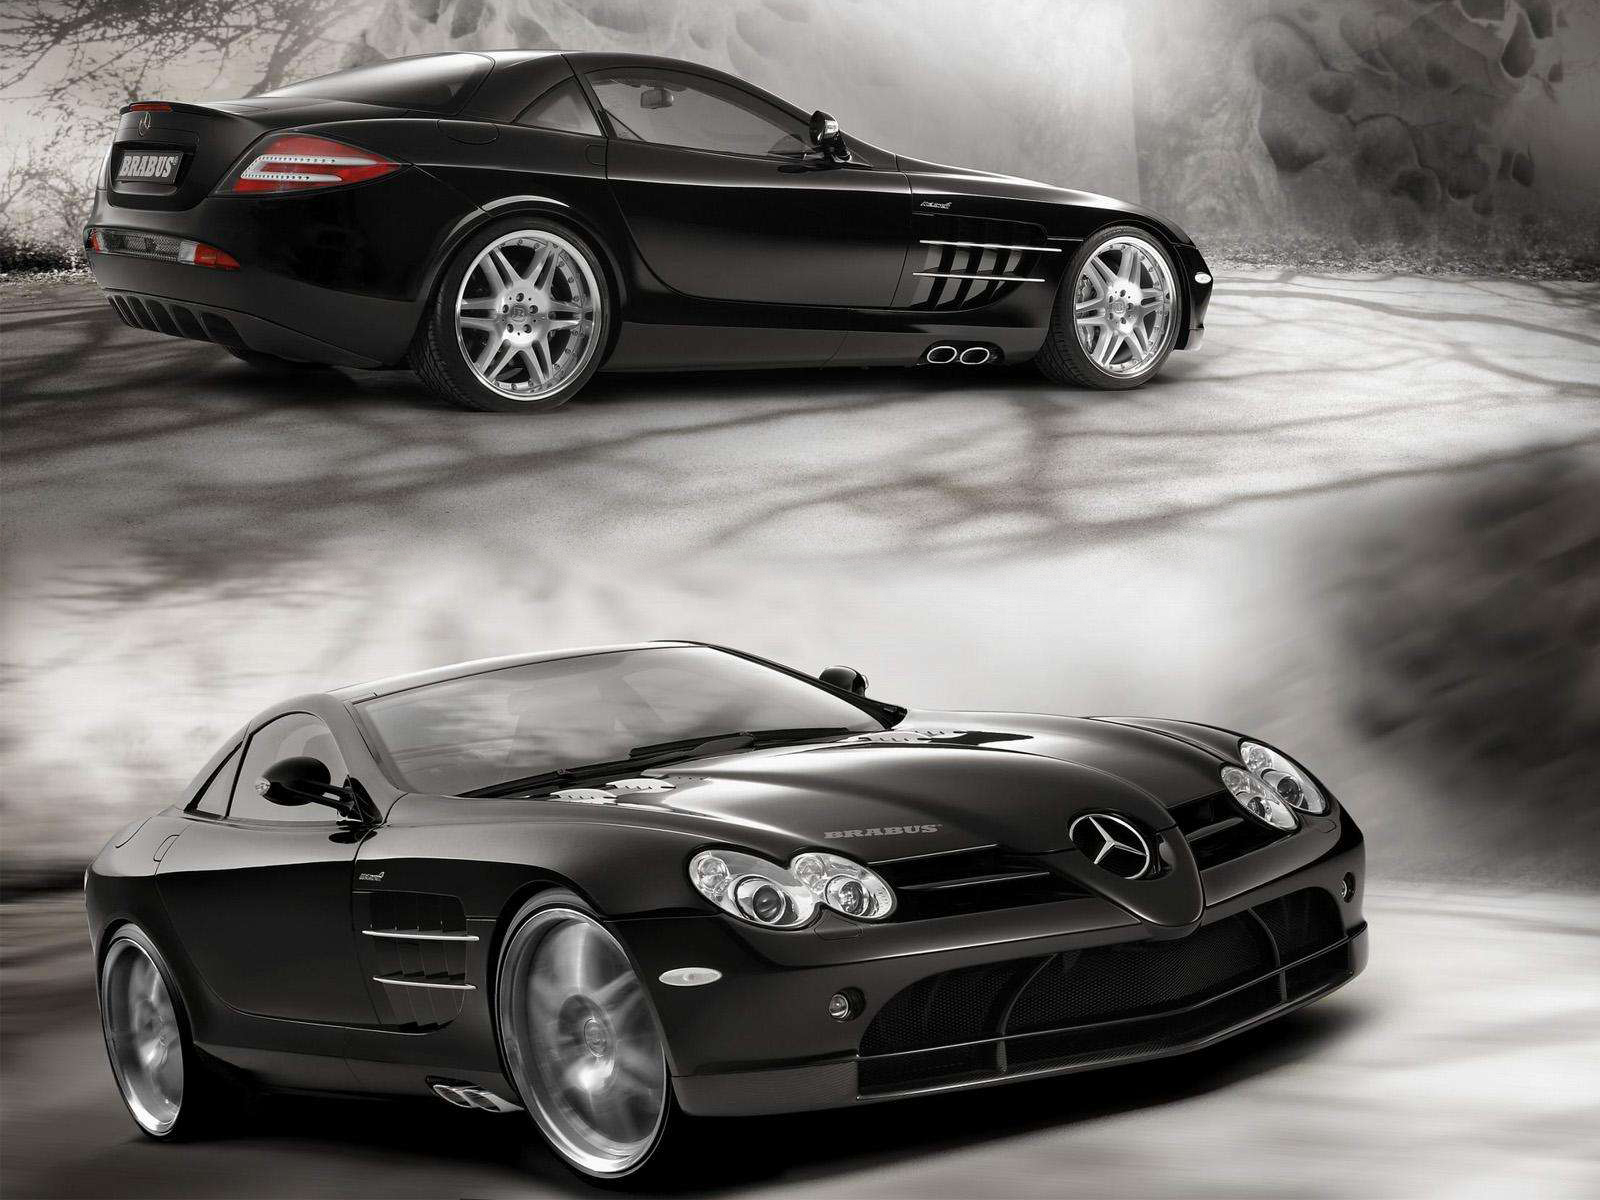 Mercedes-Benz SLR McLaren black #1